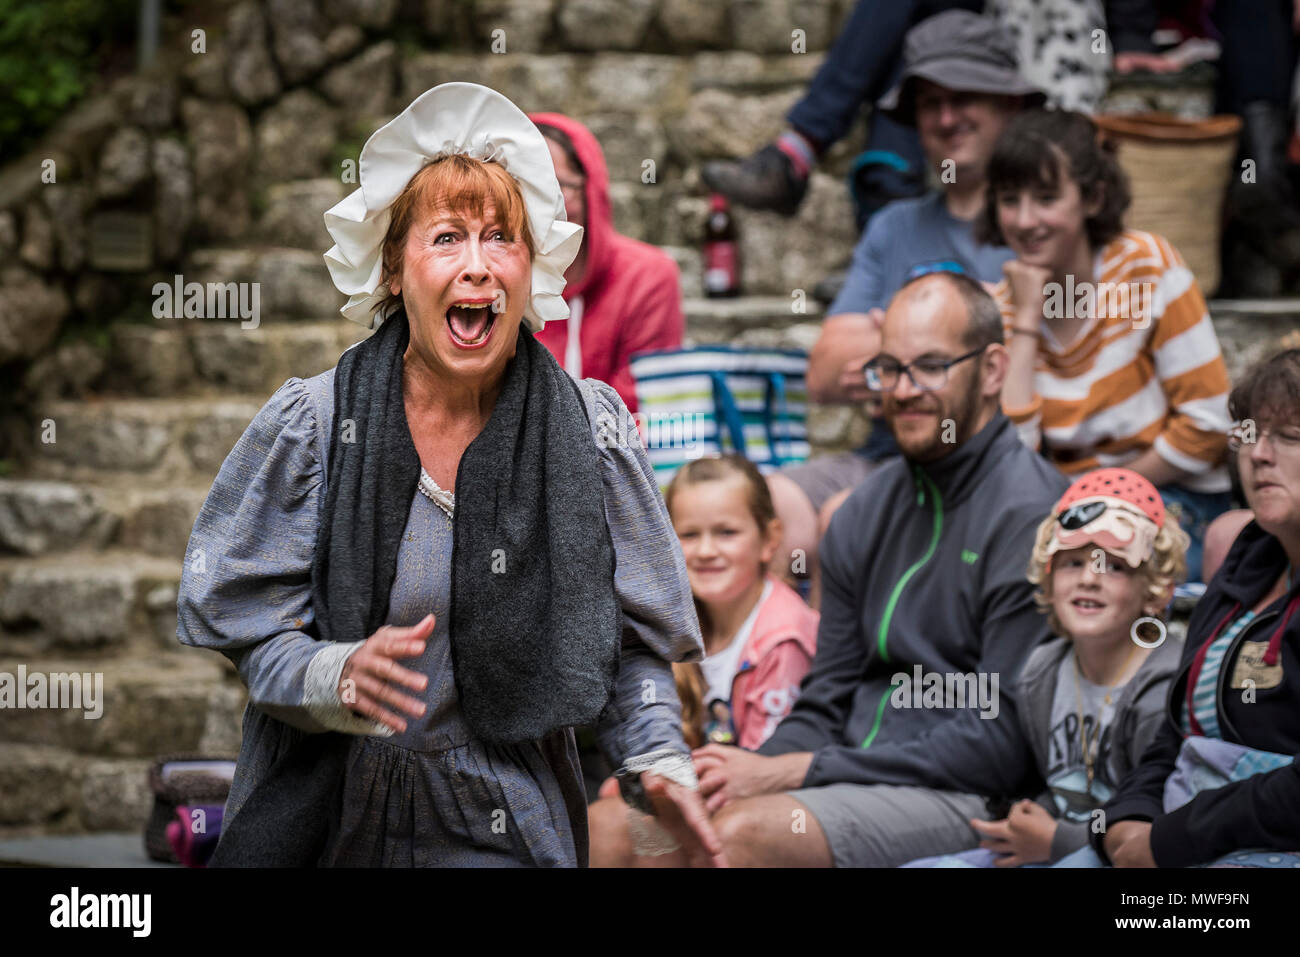 Acting - An amateur drama group in a performance at Trebah Garden Amphitheatre in Cornwall. Stock Photo